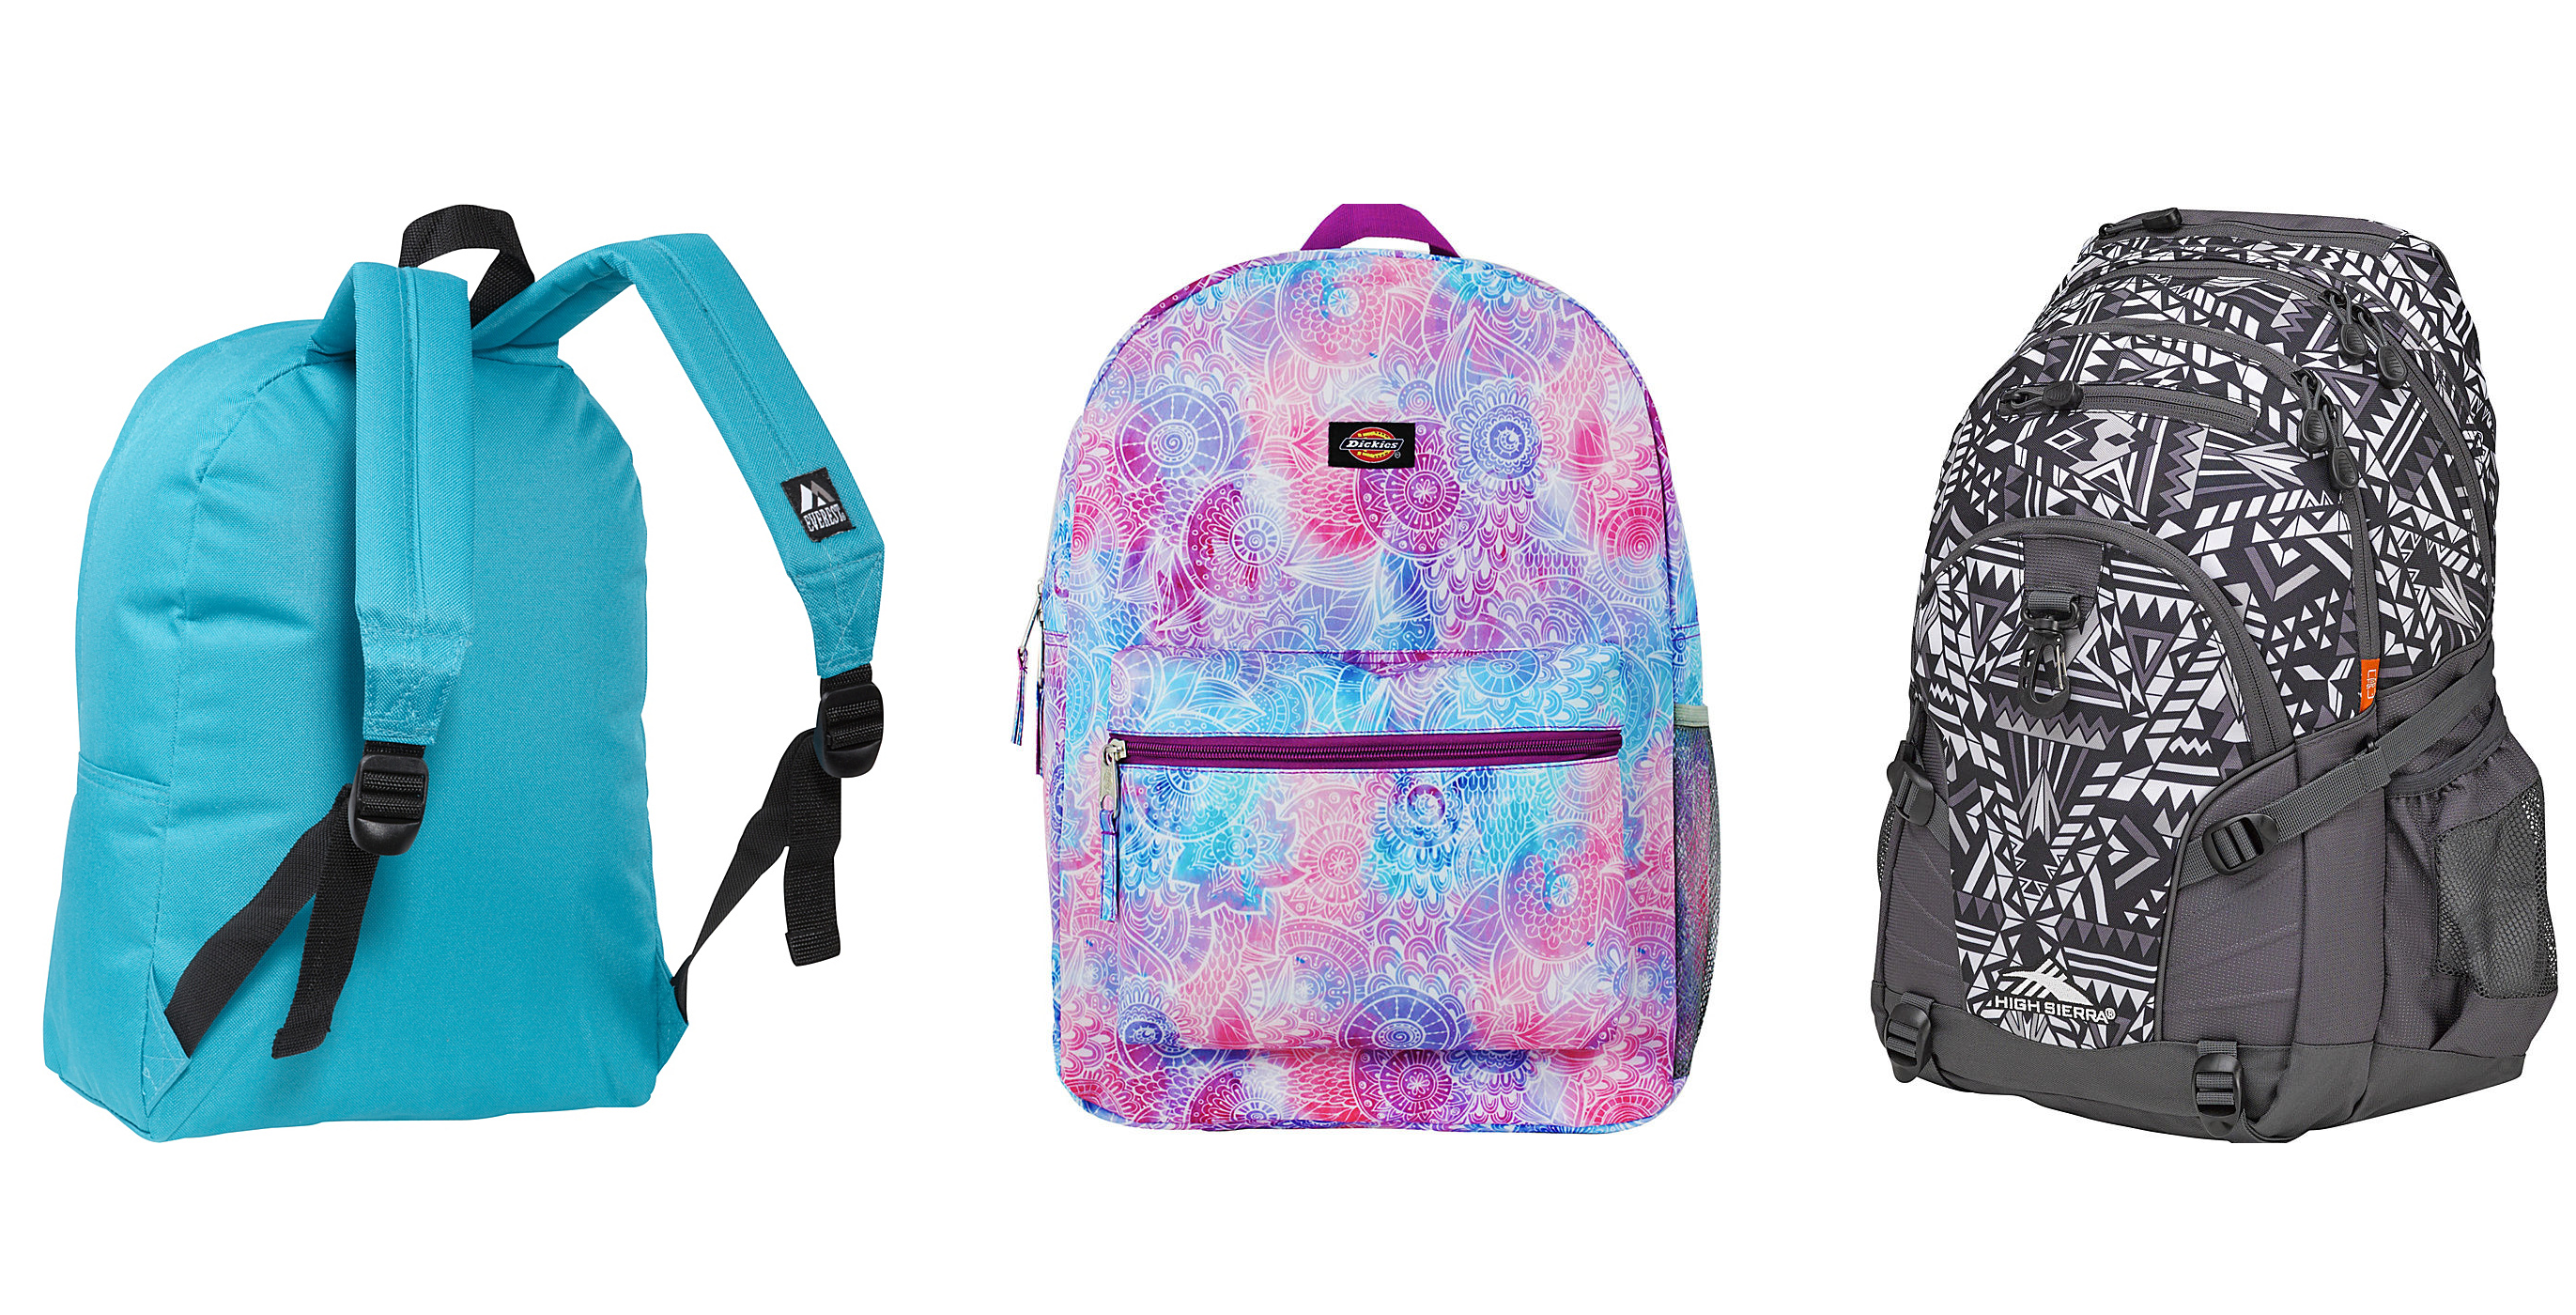 Designer deals club for hancock - Nice Deals On Backpacks At Ebay 20 Off With 25 20 Off One Wyb Three